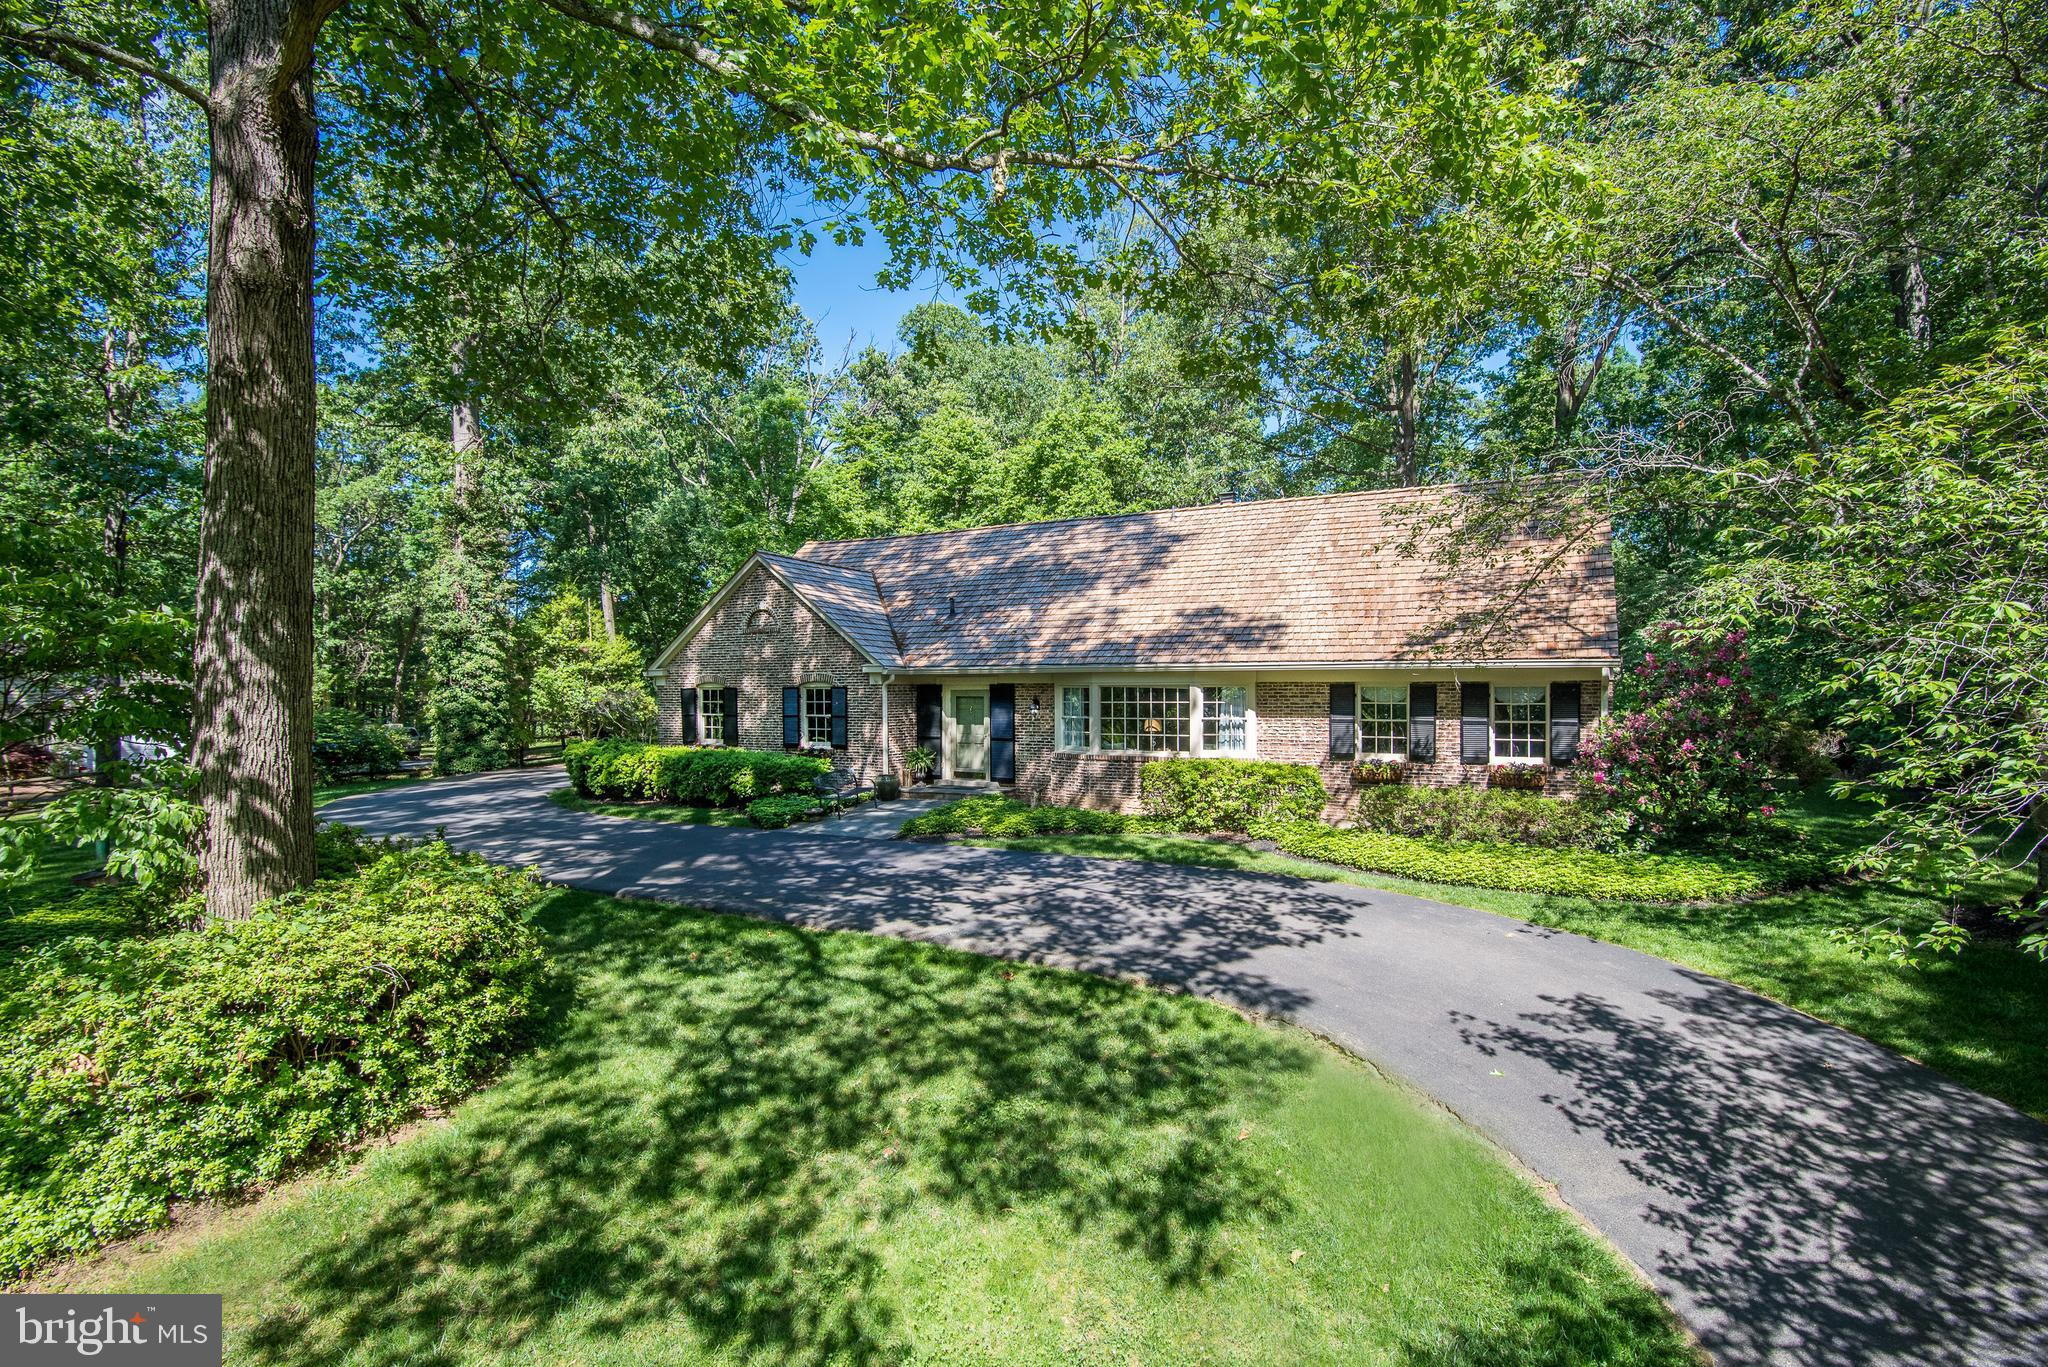 Welcome to this Distinctive WC & AN Miller Built 4 Bedroom, 3.5 Bath Home, nestled on a tree-lined 2